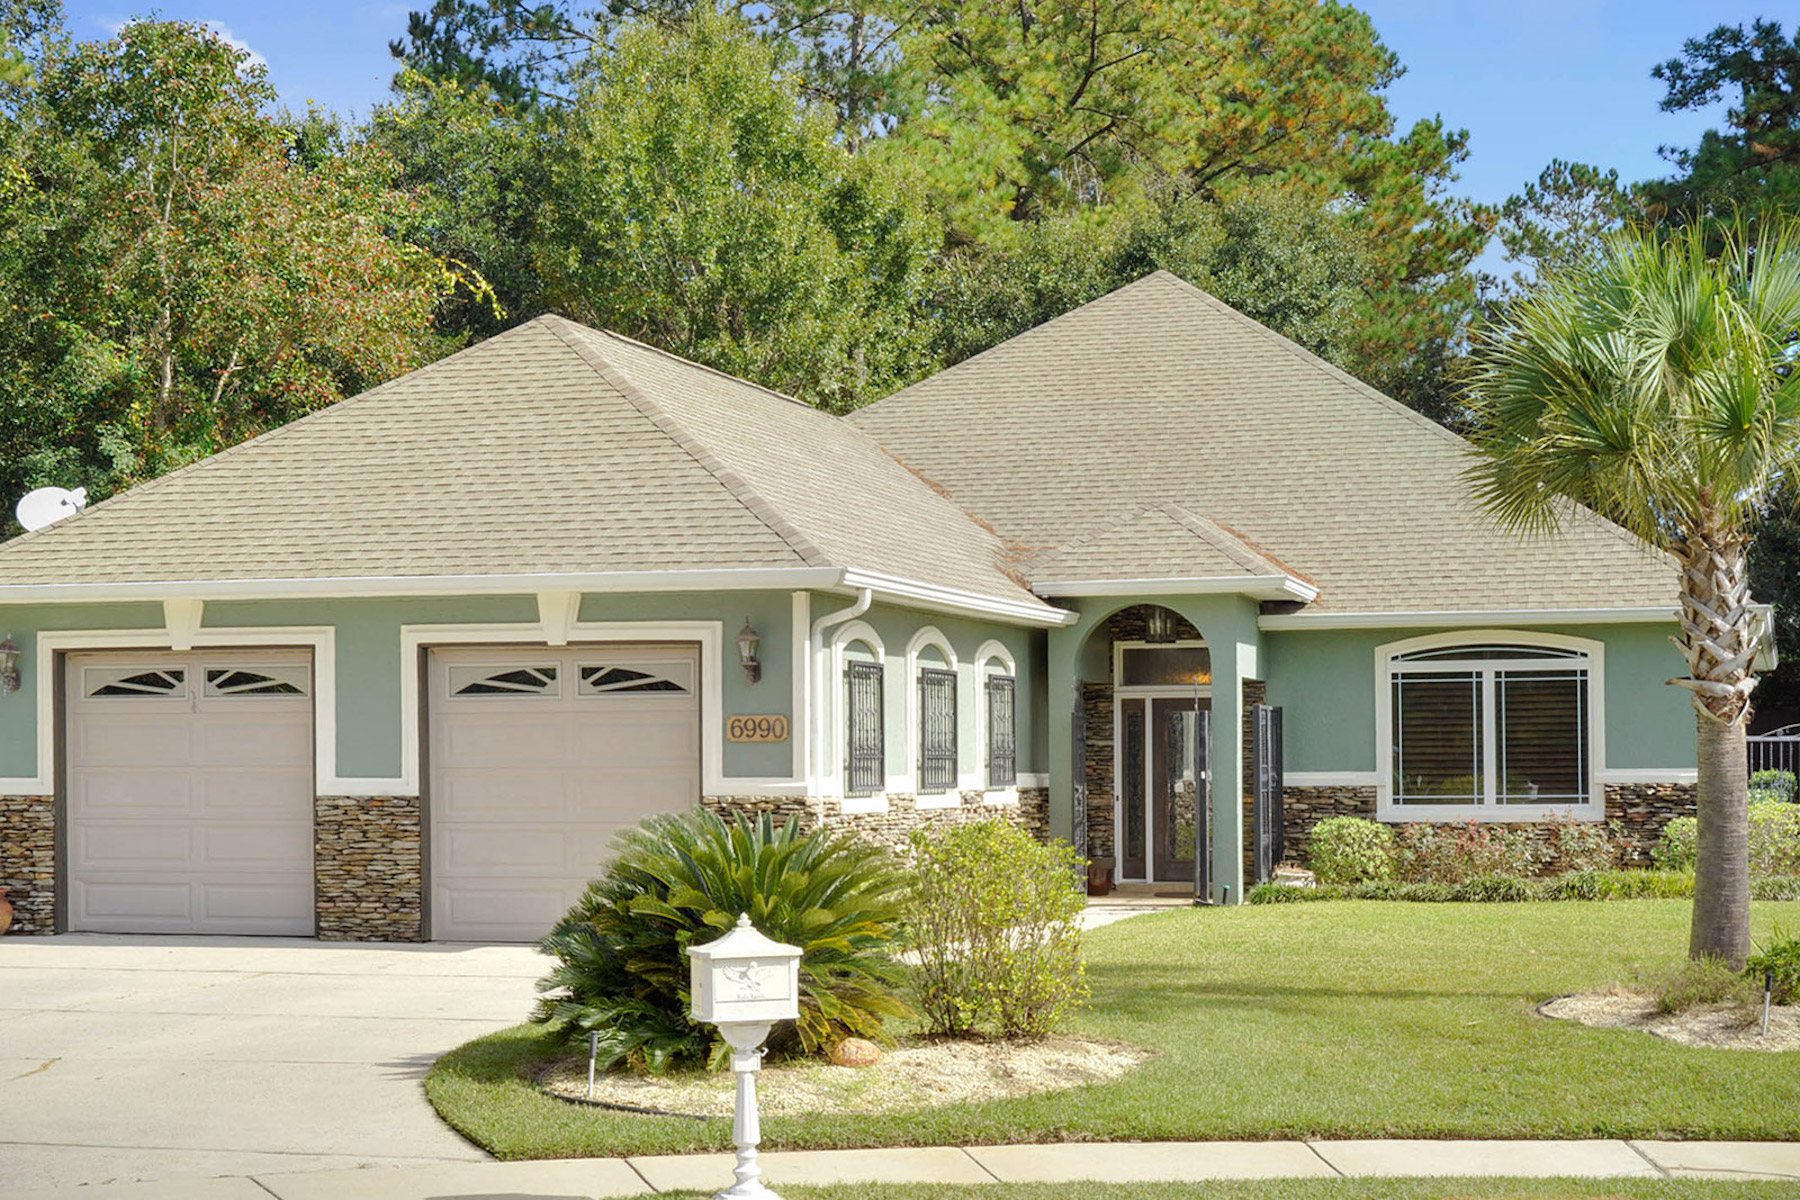 Single Family Home for Sale at Granite Cove Gulf Shores 6990 Marble Court, Gulf Shores, Alabama, 36542 United States